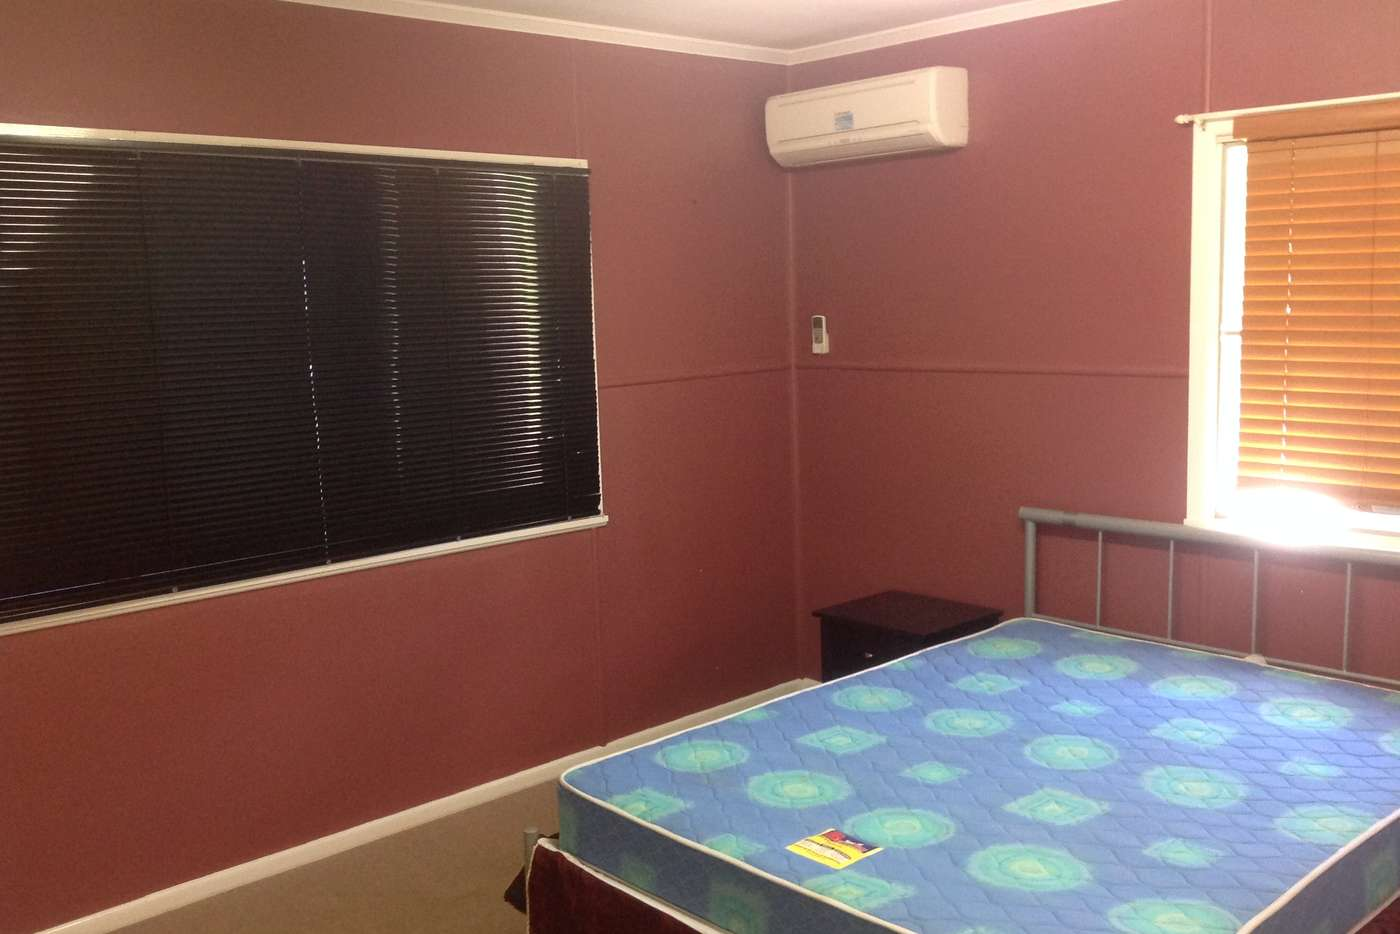 Sixth view of Homely house listing, 52 King St, Nanango QLD 4615